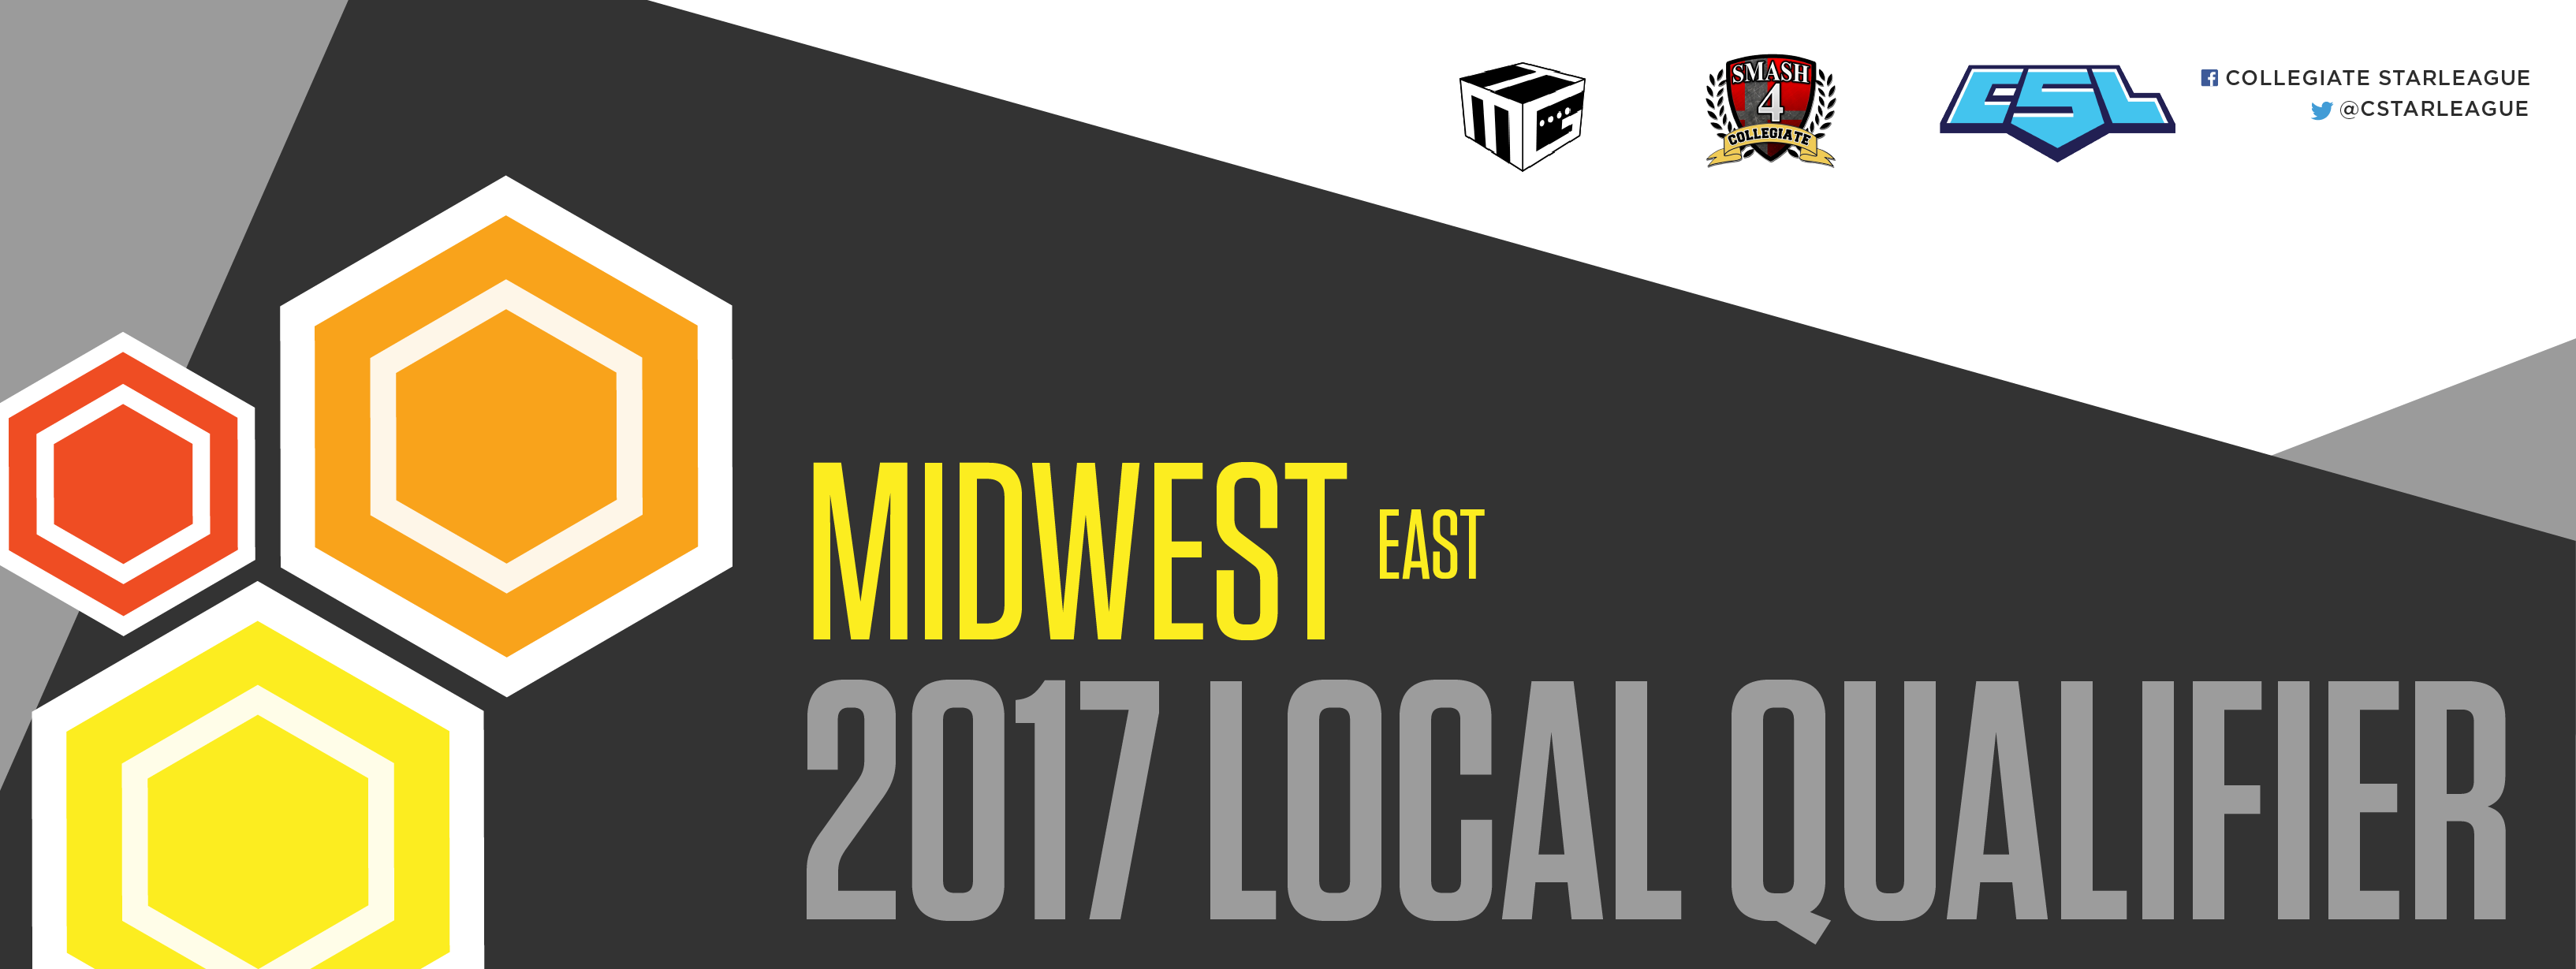 Midwest east 01